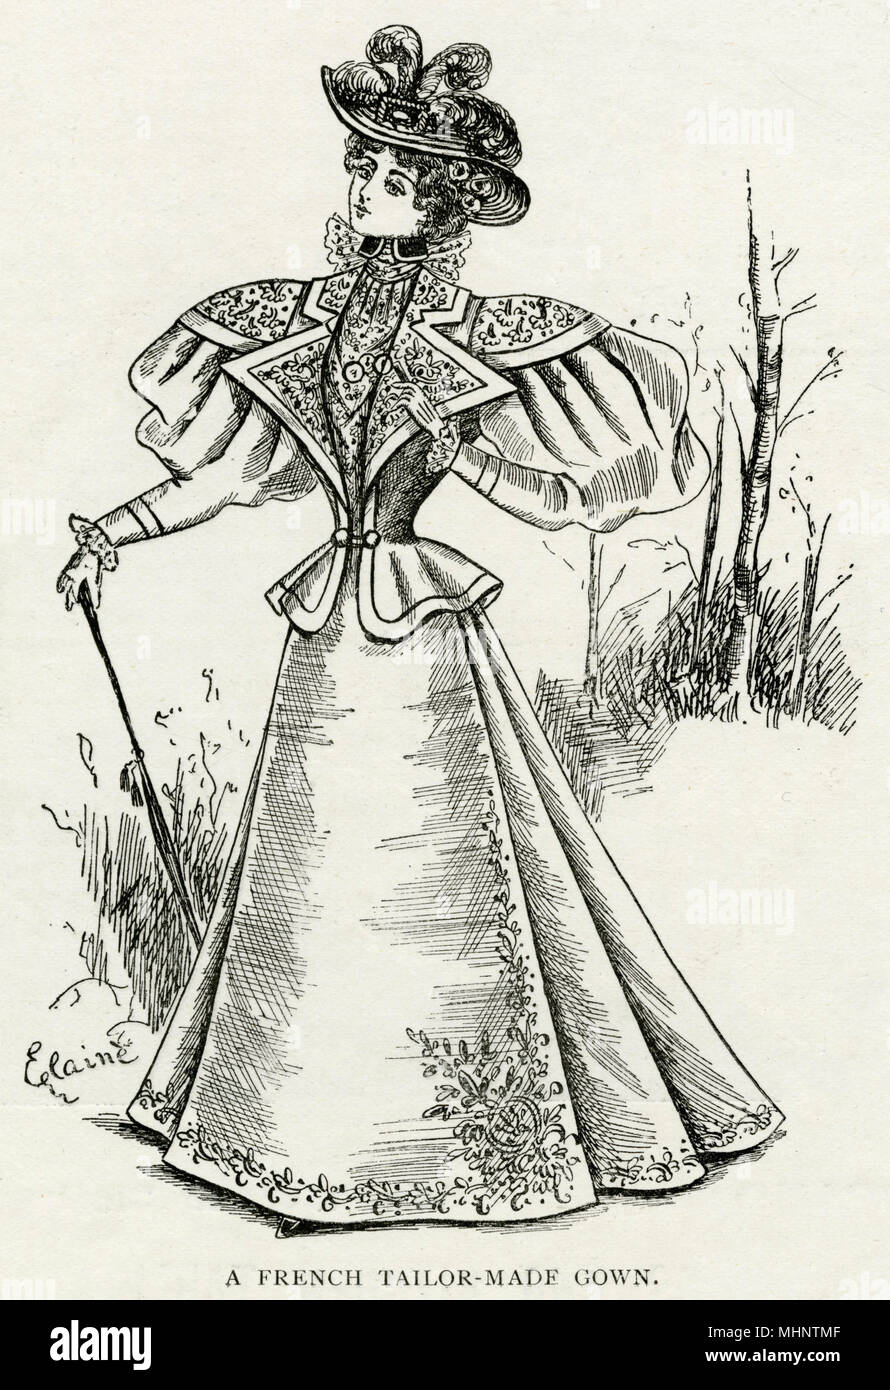 Tailored dress with leg-of-mutton sleeves and narrow waist.     Date: 1895 - Stock Image